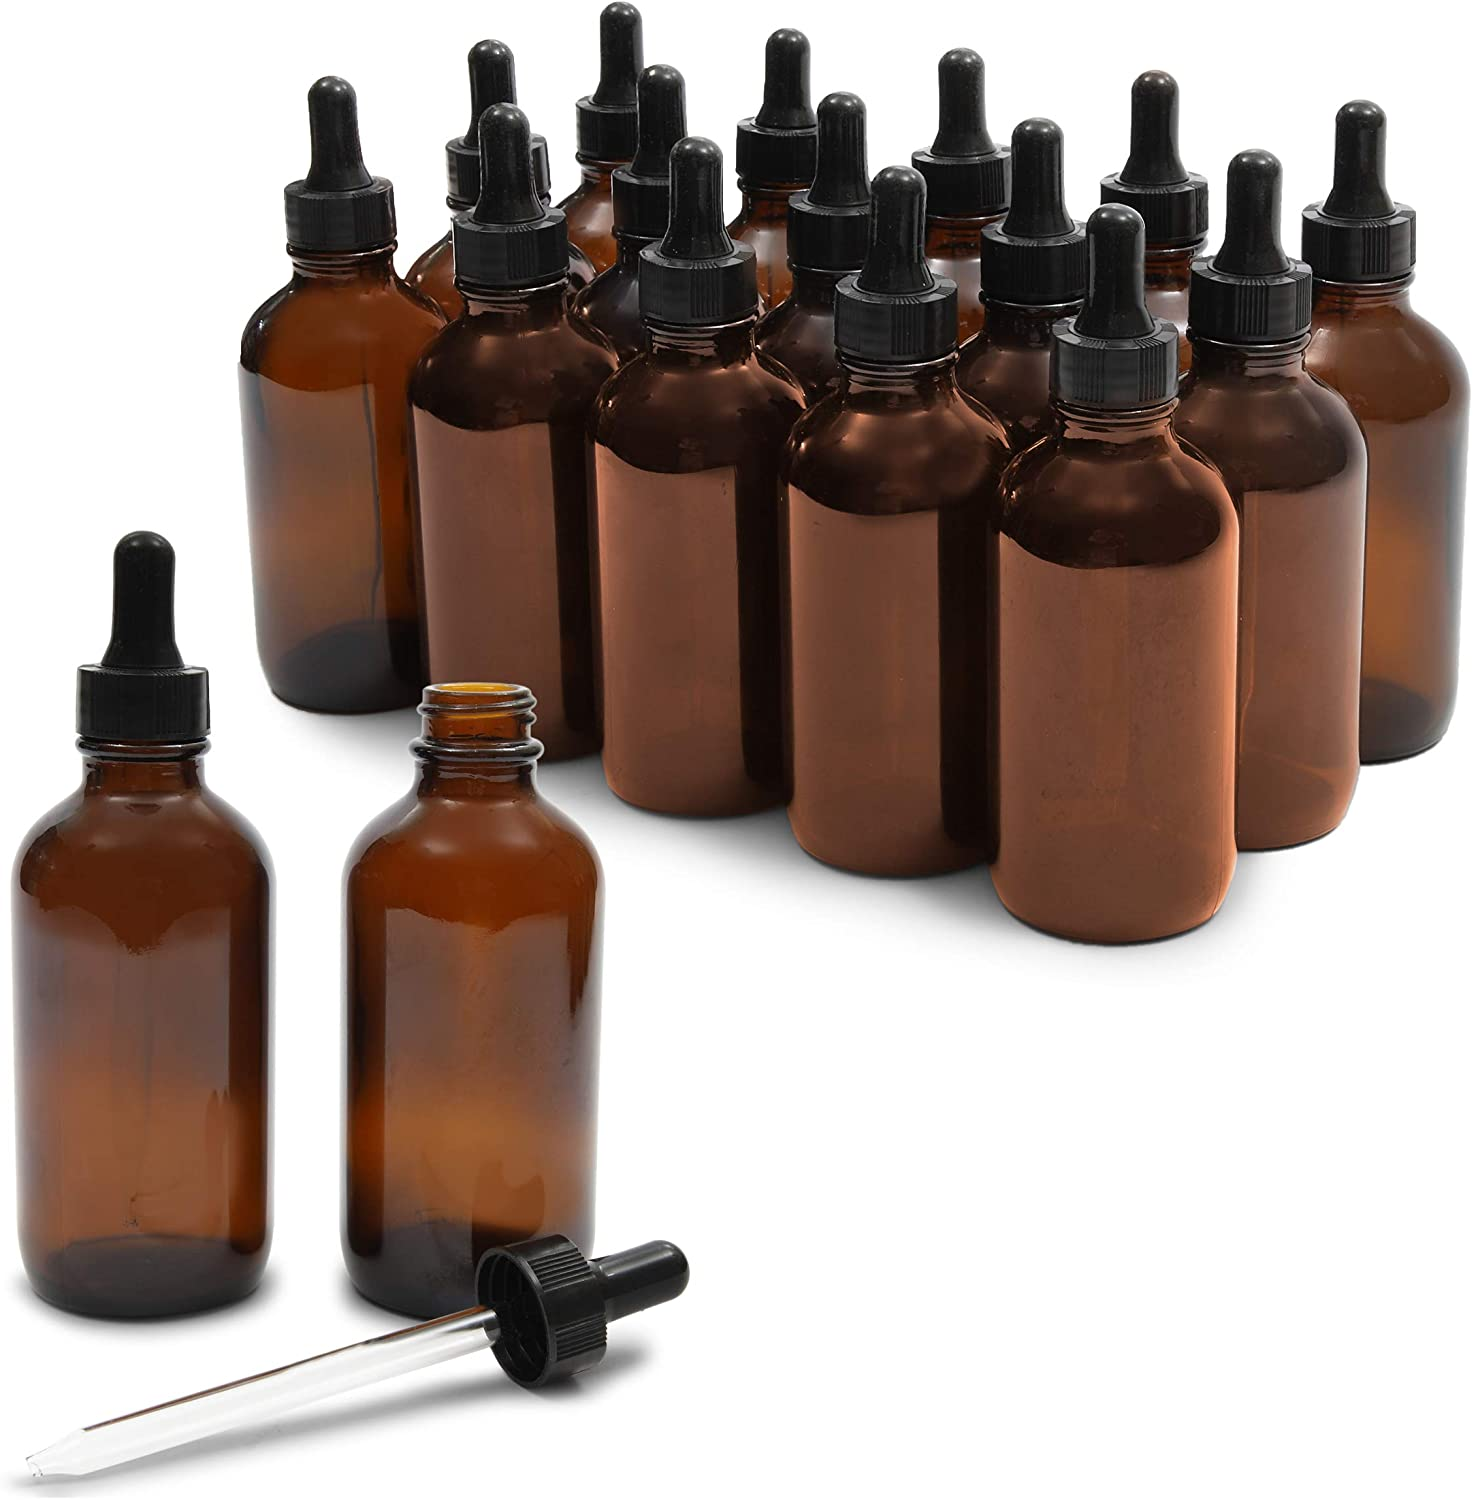 15 Count 4 oz Amber Glass Dropper Bottles and 6 Funnels (120 ml, 21 Pieces)